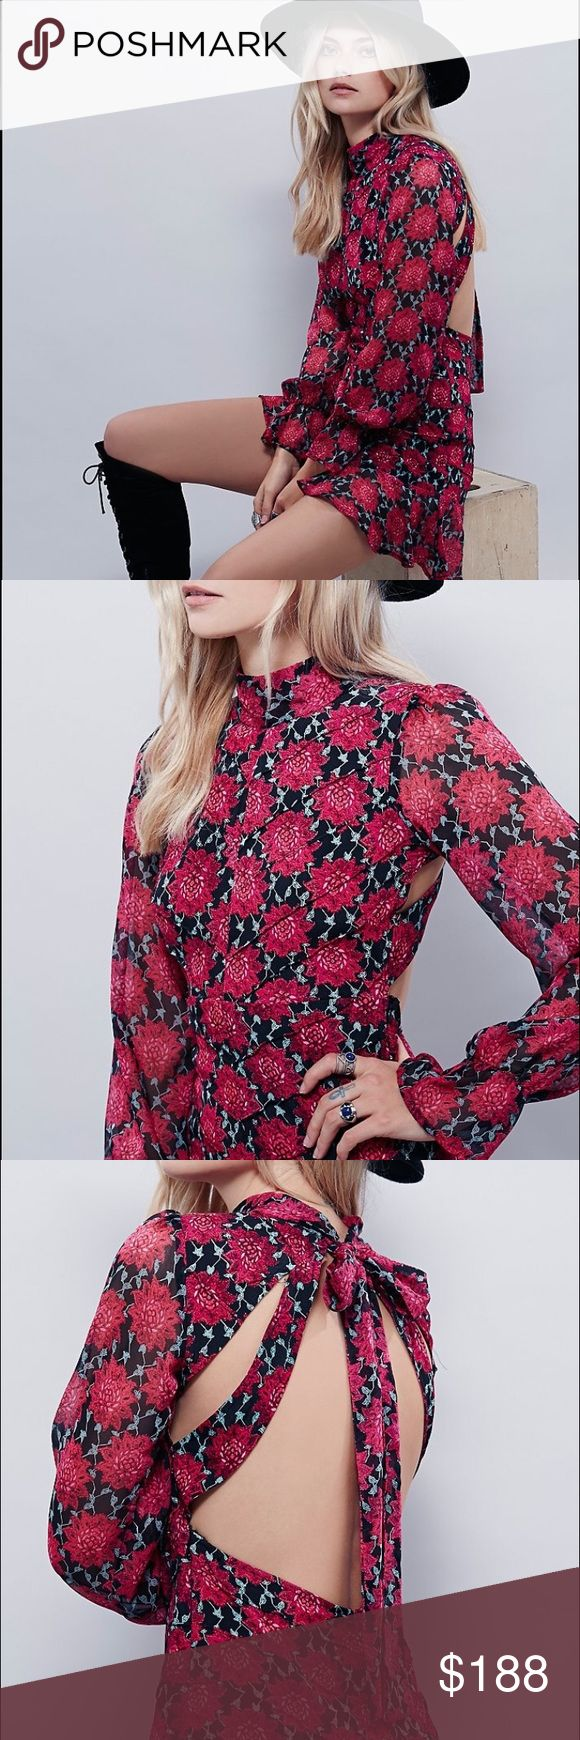 """For Love And Lemons Clover Mini Floral Dress NWOT Semi-sheer magenta/black/mint floral print mini dress by the brand """"For Love And Lemons"""", but purchased from Free People. Features a mock neck. Open back with cut out details and ties at back of the neck. Darting textured seam lines throughout. Slightly flared/ruffle sleeve cuffs. Side zip closure. Made from rayon and polyester fabrics. Women's size small. This piece is new without tags, as I have never ended up wearing it. This is in…"""